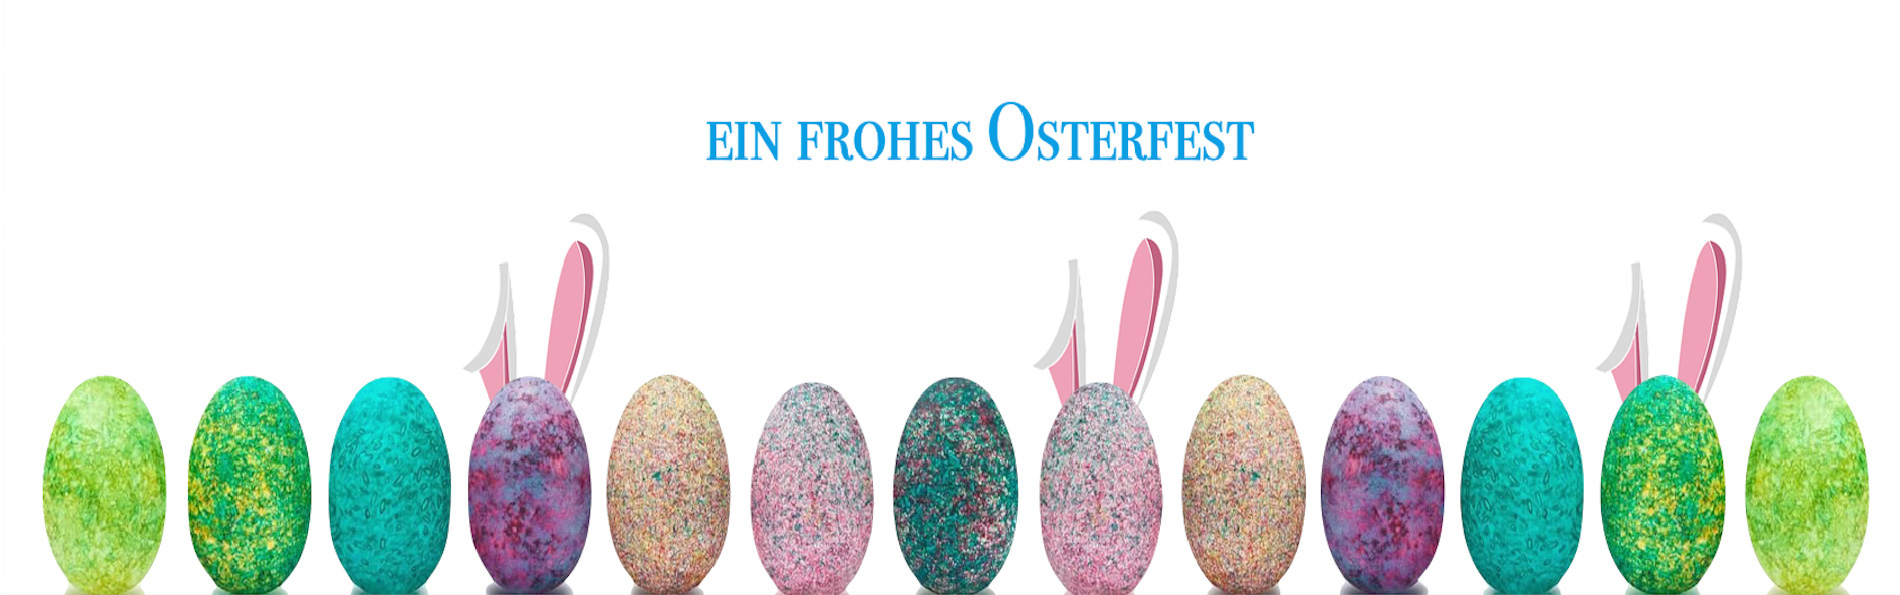 Oster-Shopping